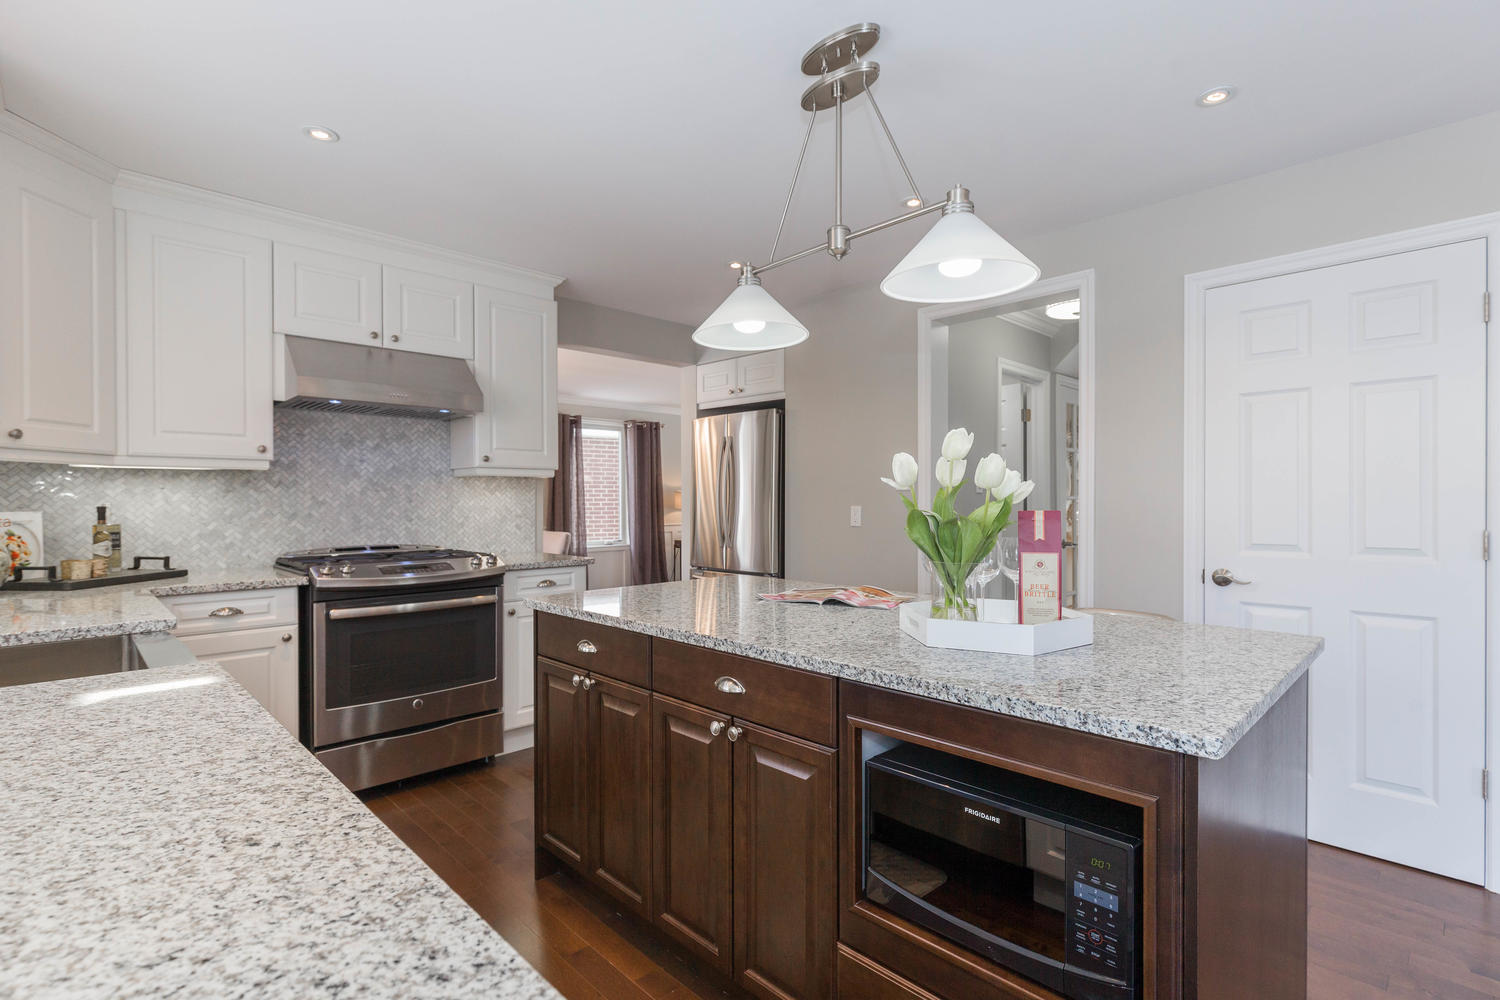 New white kitchen with granite counter top and marble back-splash, built in  pantry and centre island  > New stainless steel appliances in kitchen  > Slide in gas range with stainless steel exhaust hood